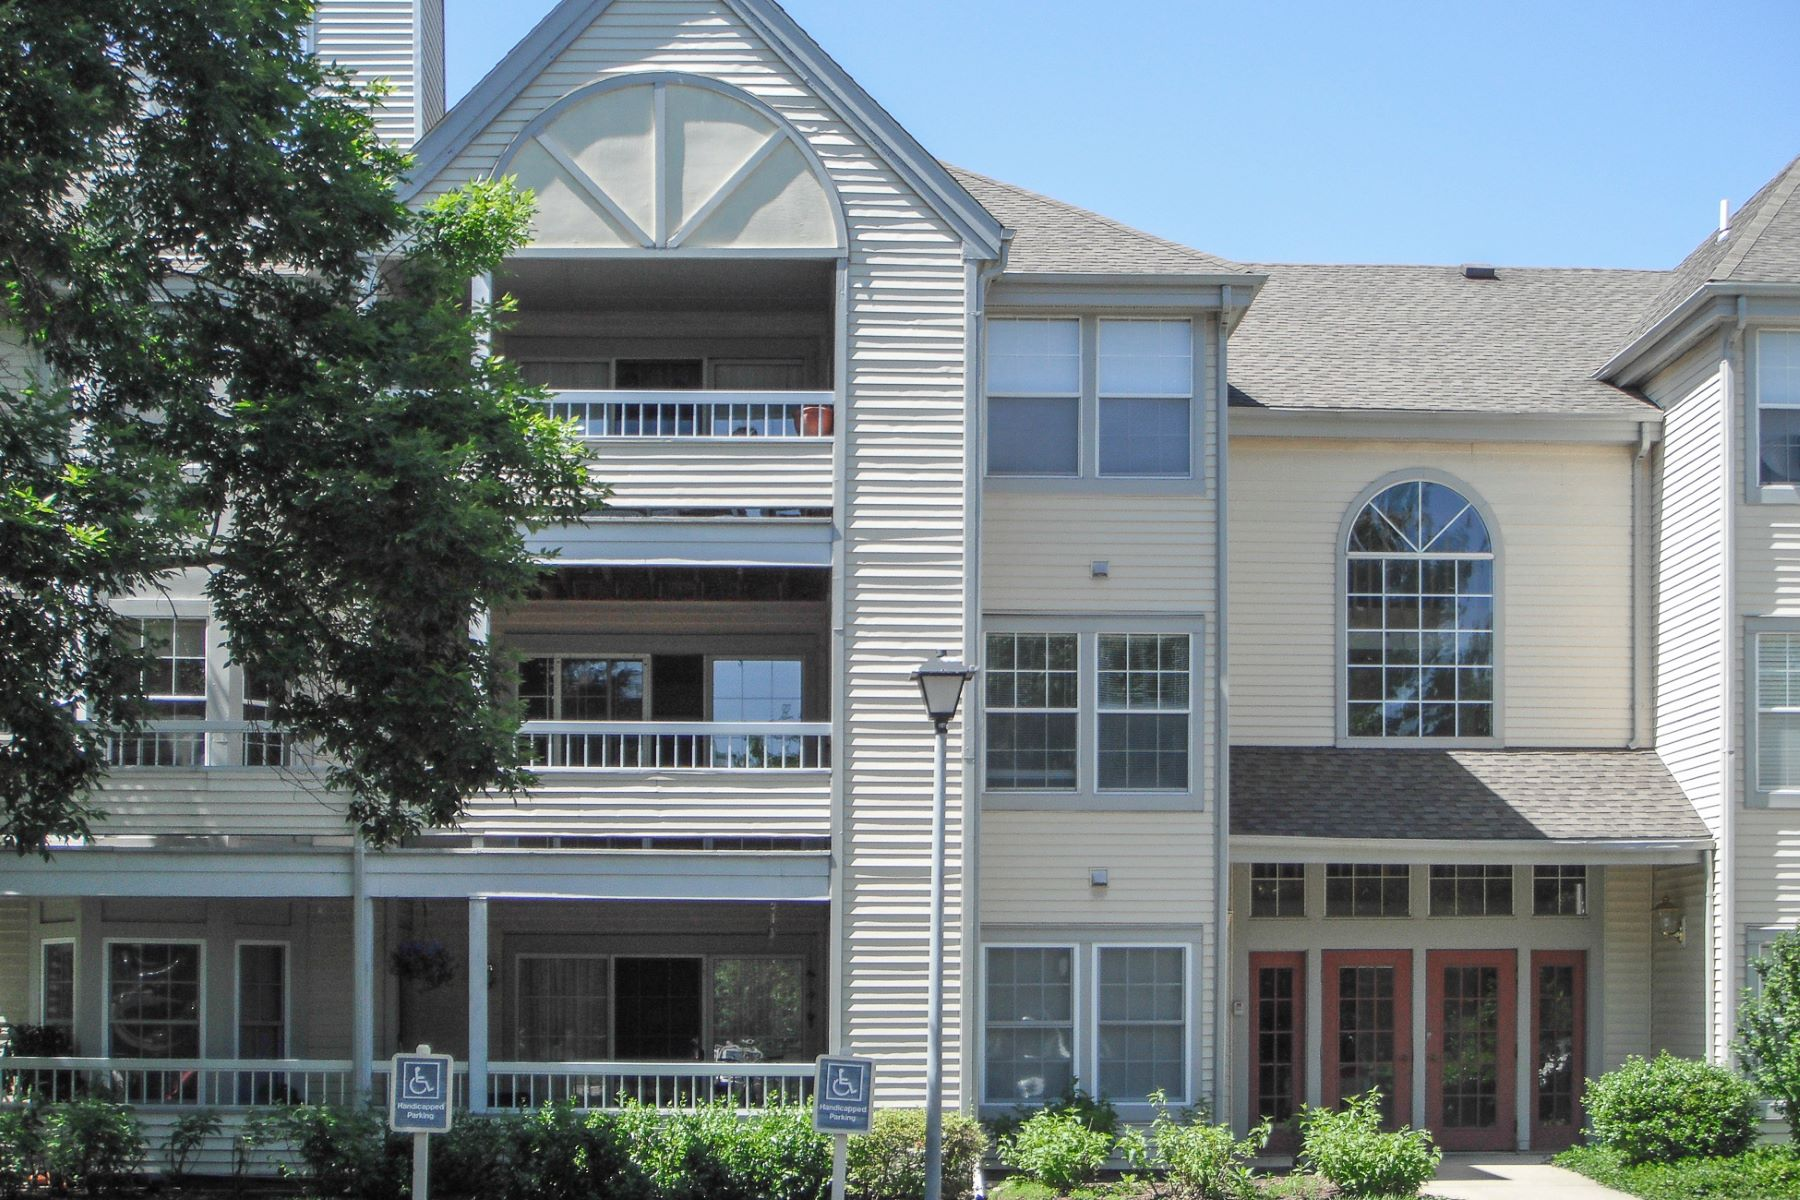 Property for Rent at Rental Opportunity - Two Bedroom - West Windsor Township 204 Salem Court Unit 5, Princeton, New Jersey 08540 United States